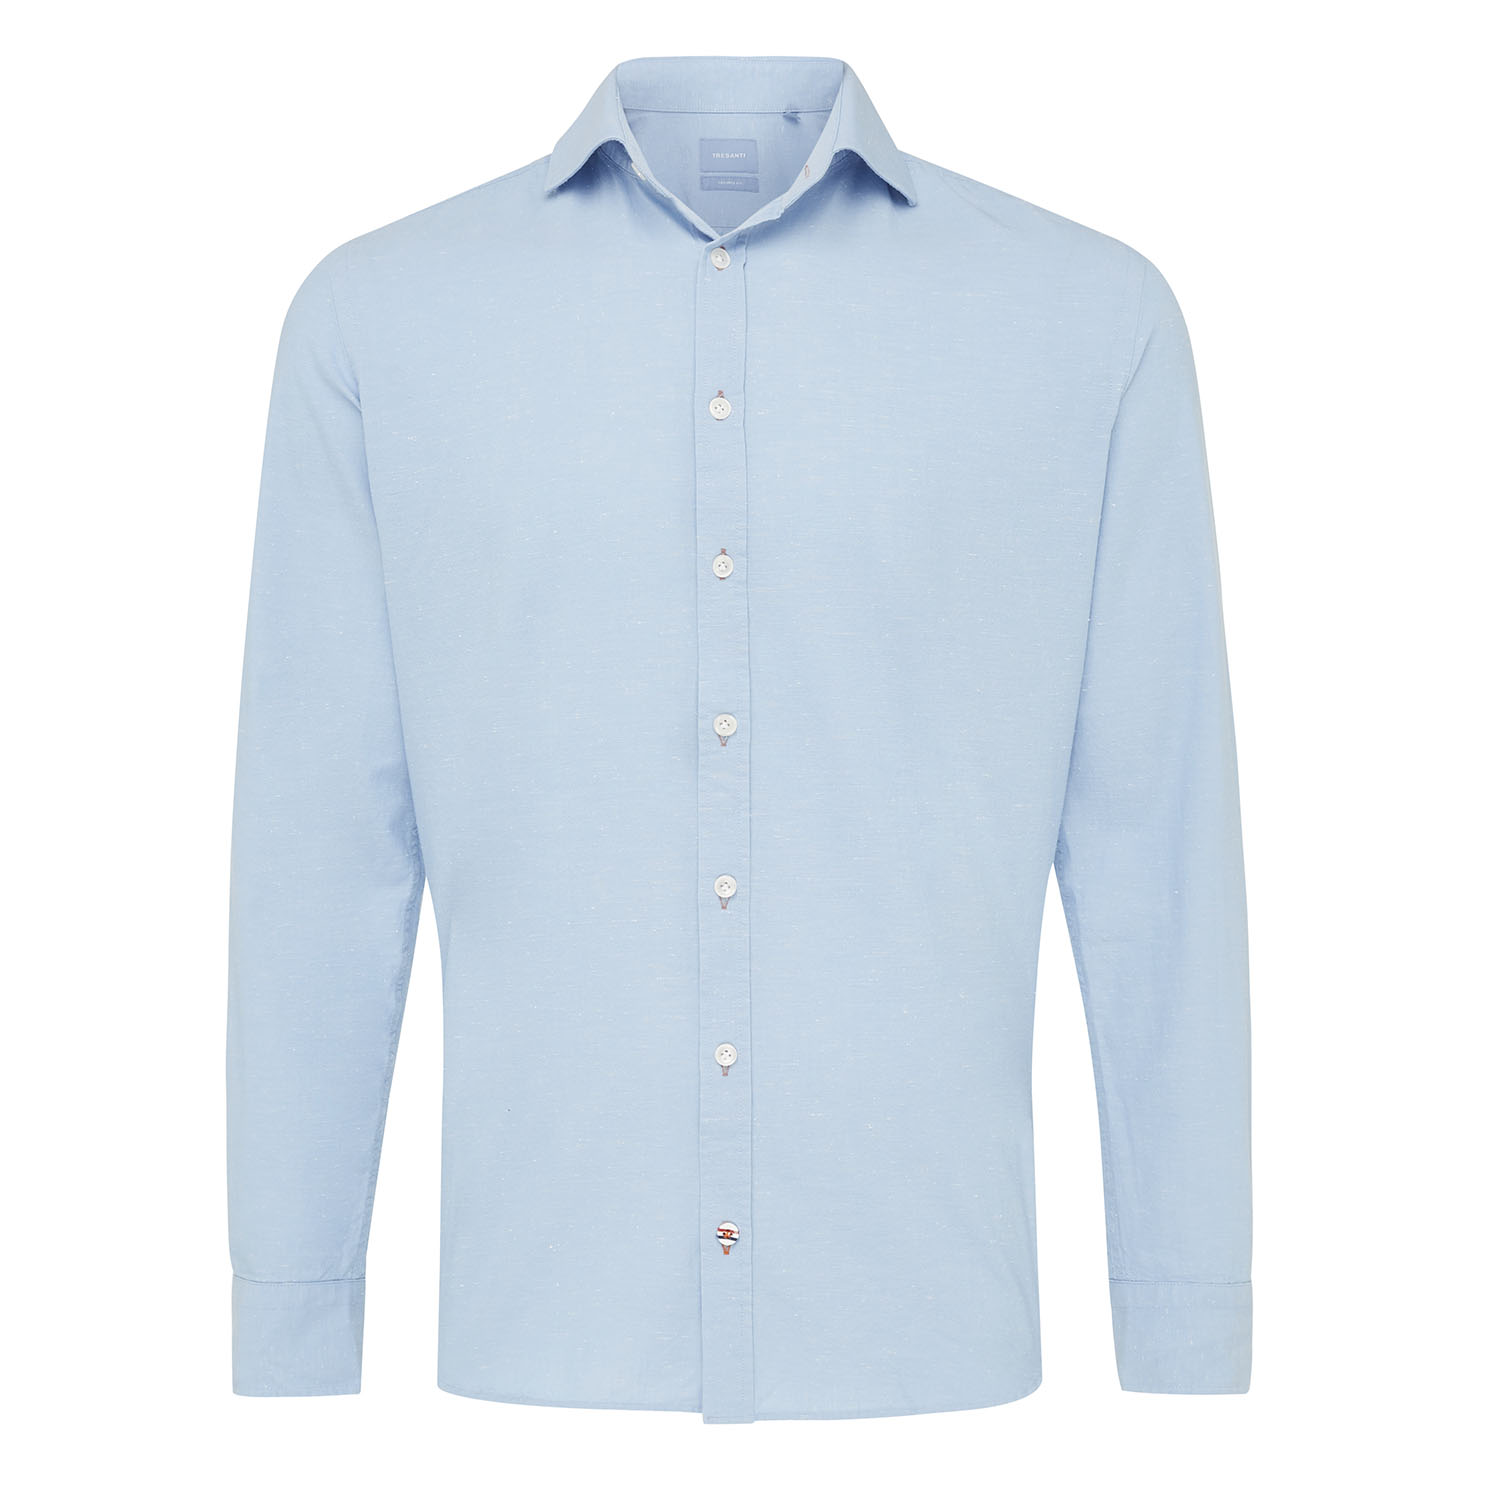 Miguel | Light blue plain shirt